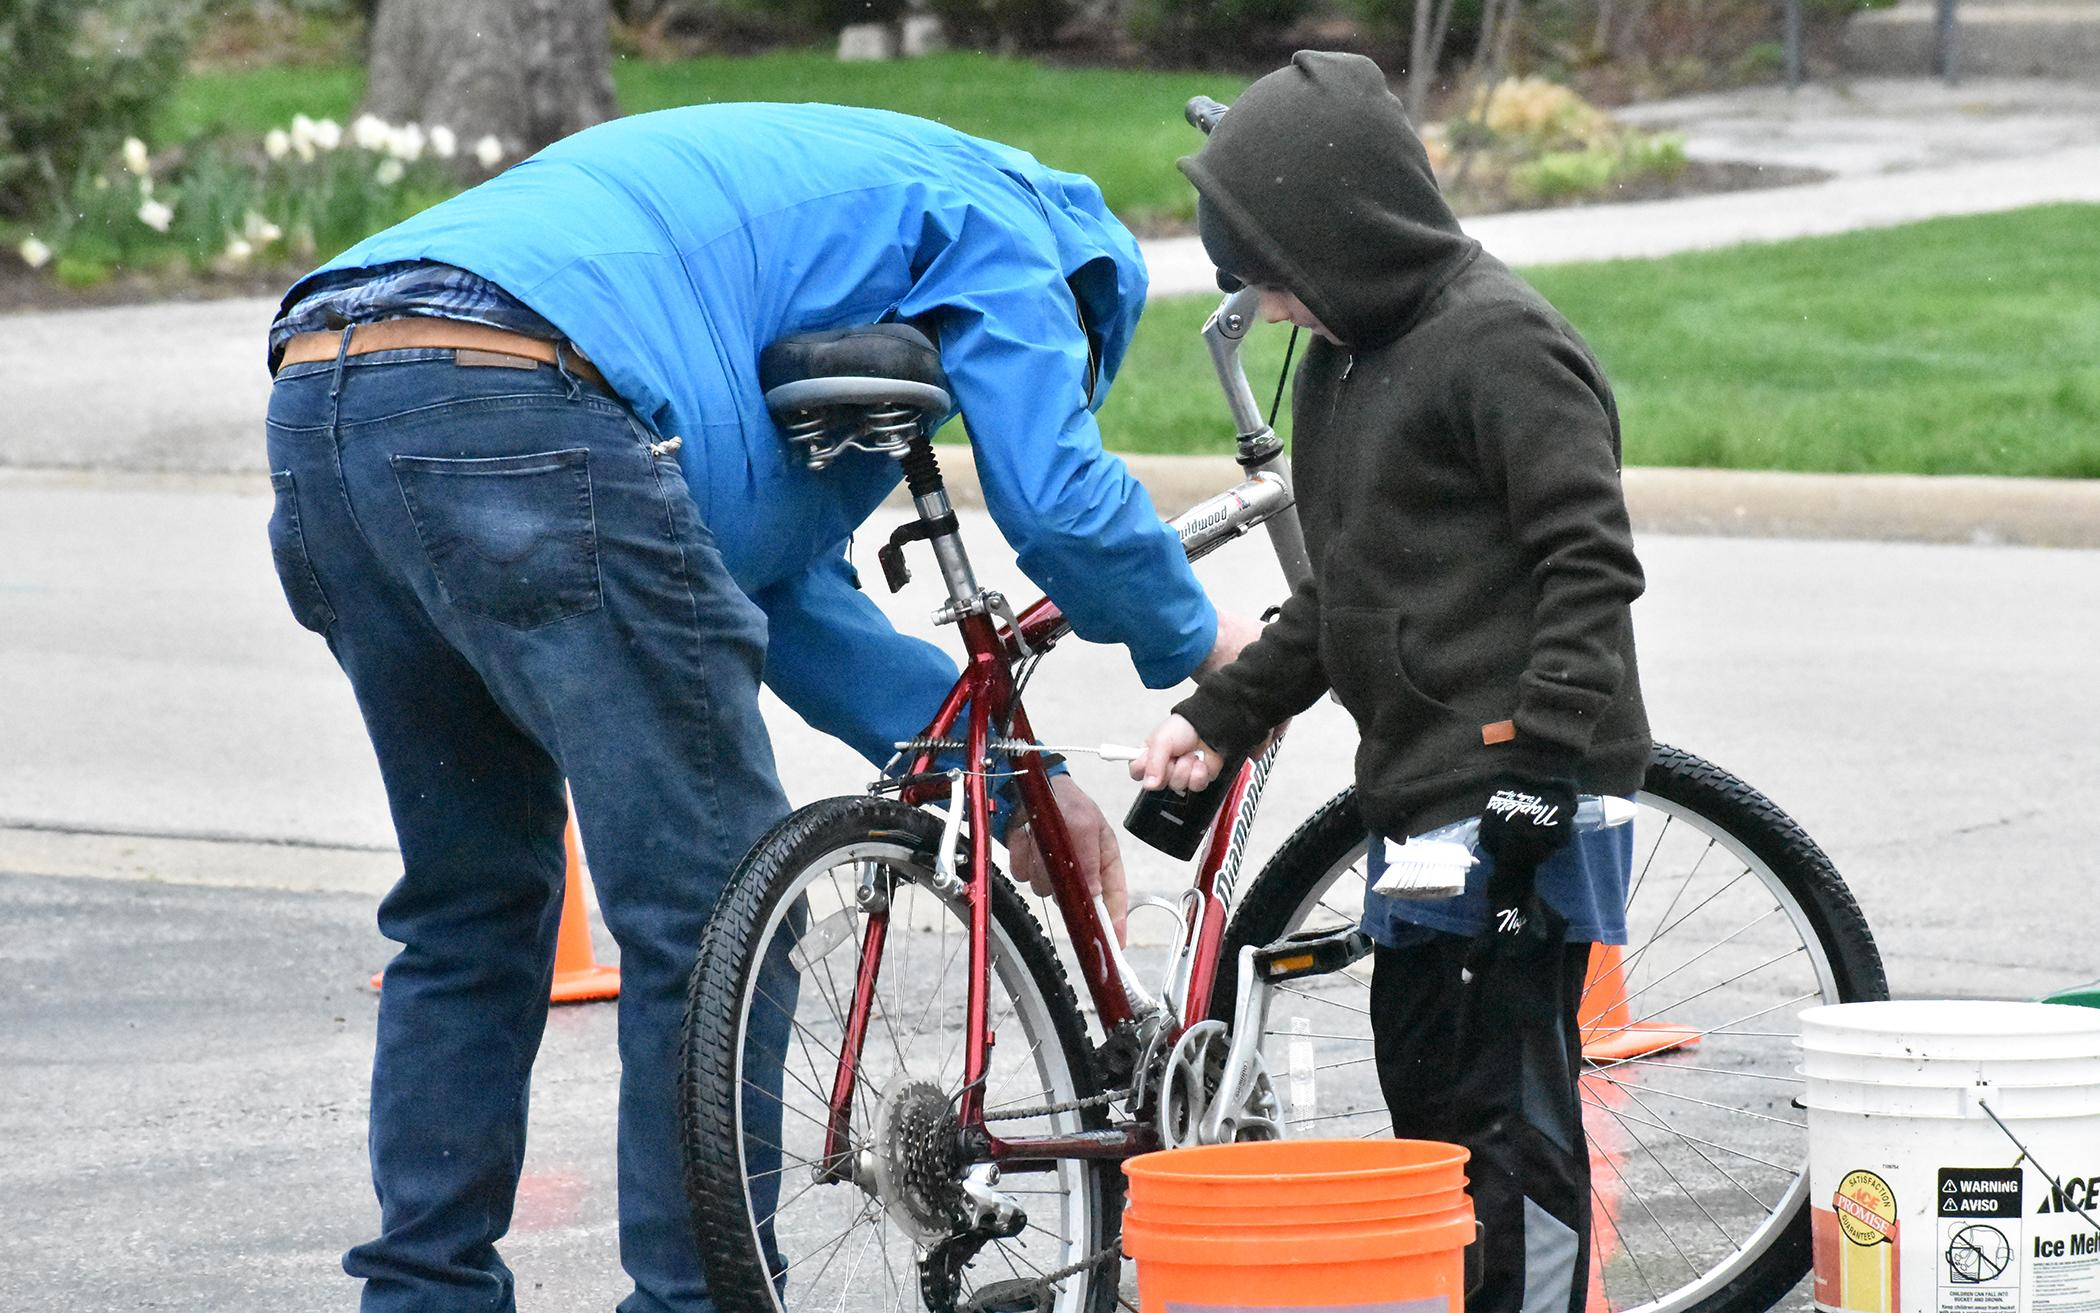 Church's Boys Club Offers Free Bike Tune-Up Day